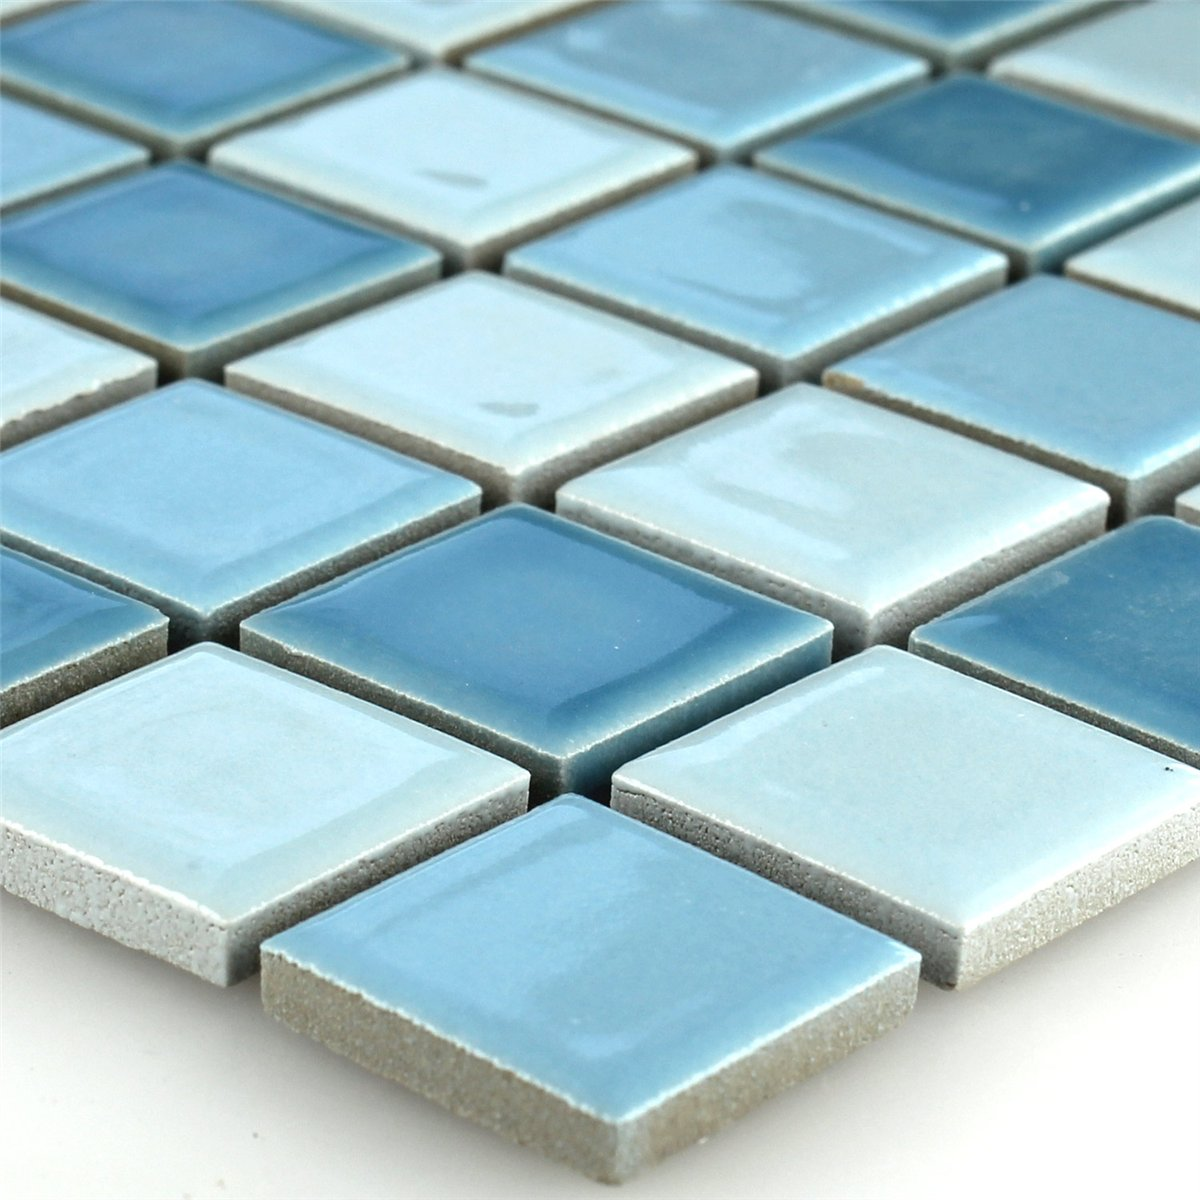 ceramic mosaic tiles blue mix 25x25x5mm. Black Bedroom Furniture Sets. Home Design Ideas